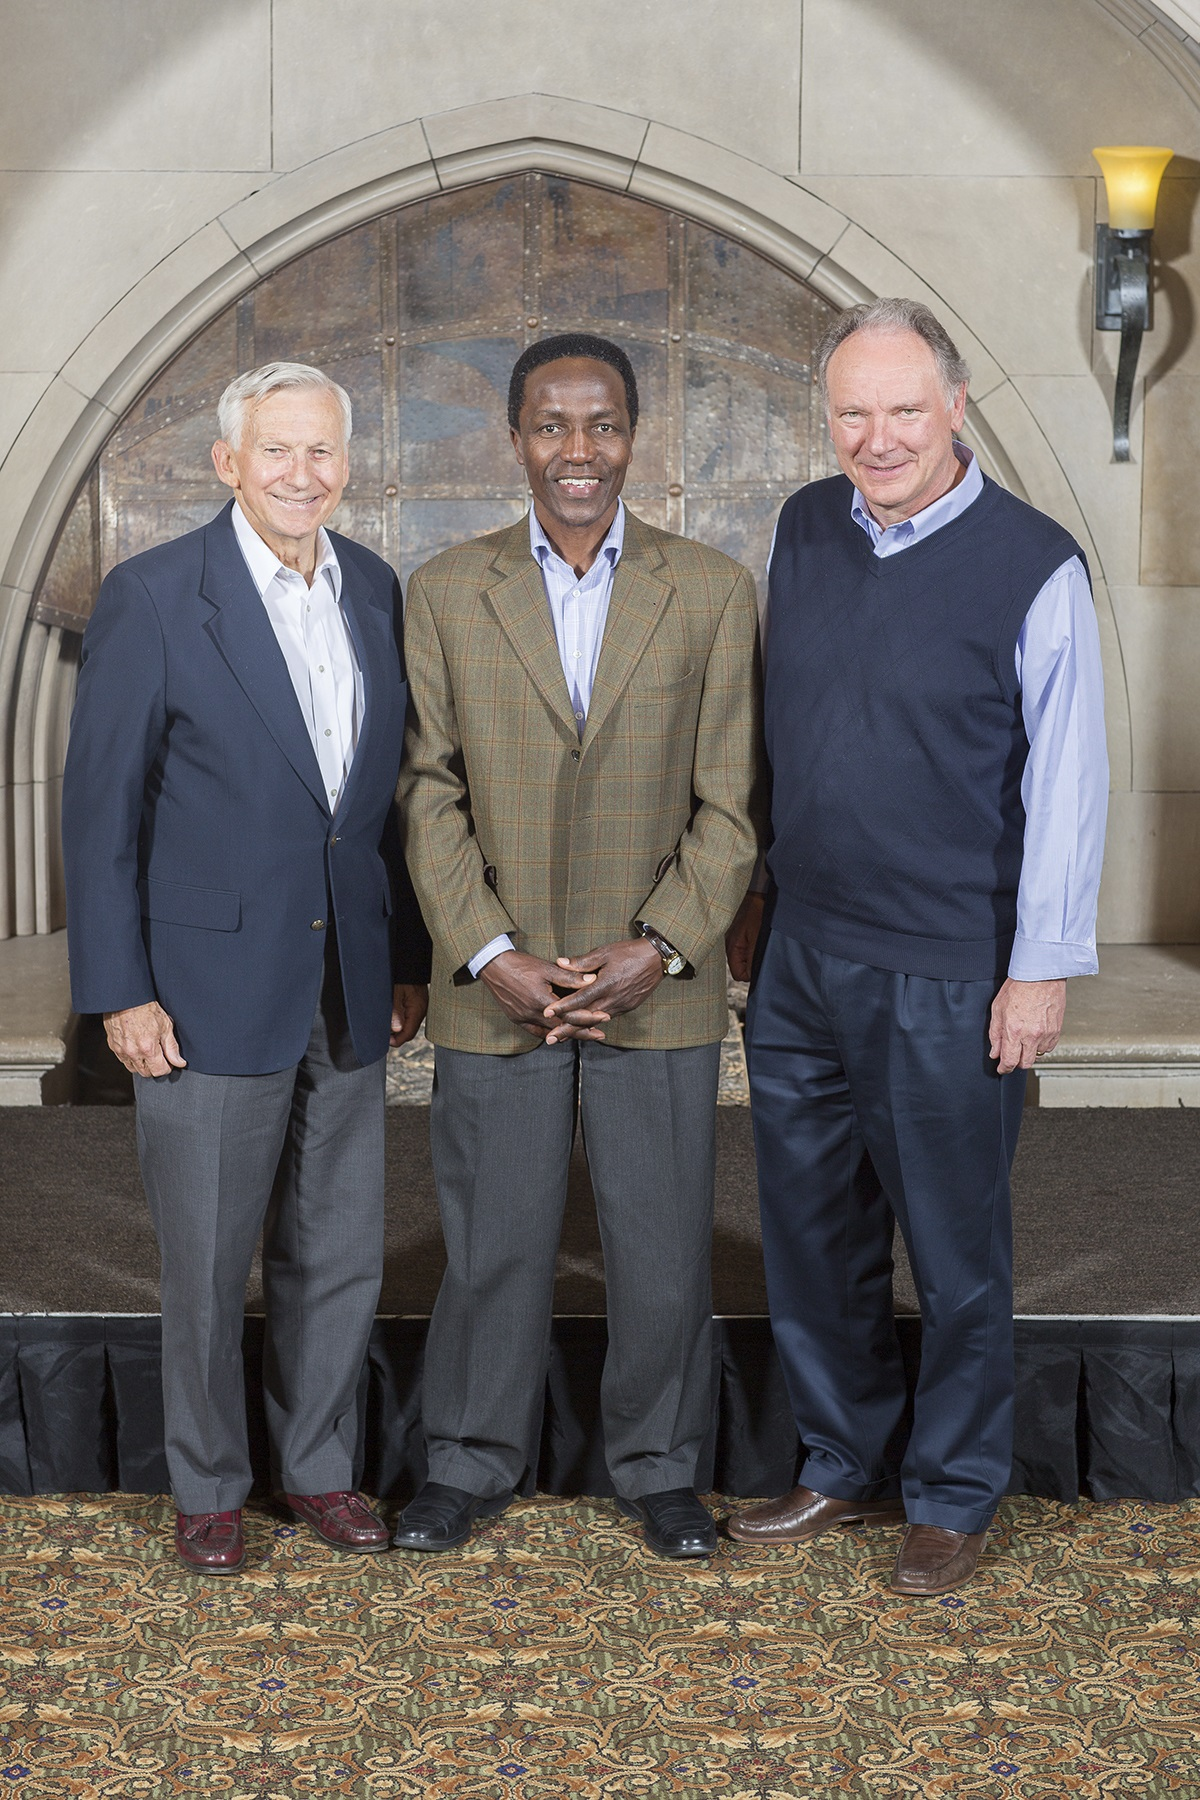 L to R: Jerry White, Mutua Mahiaini, Mike Treneer